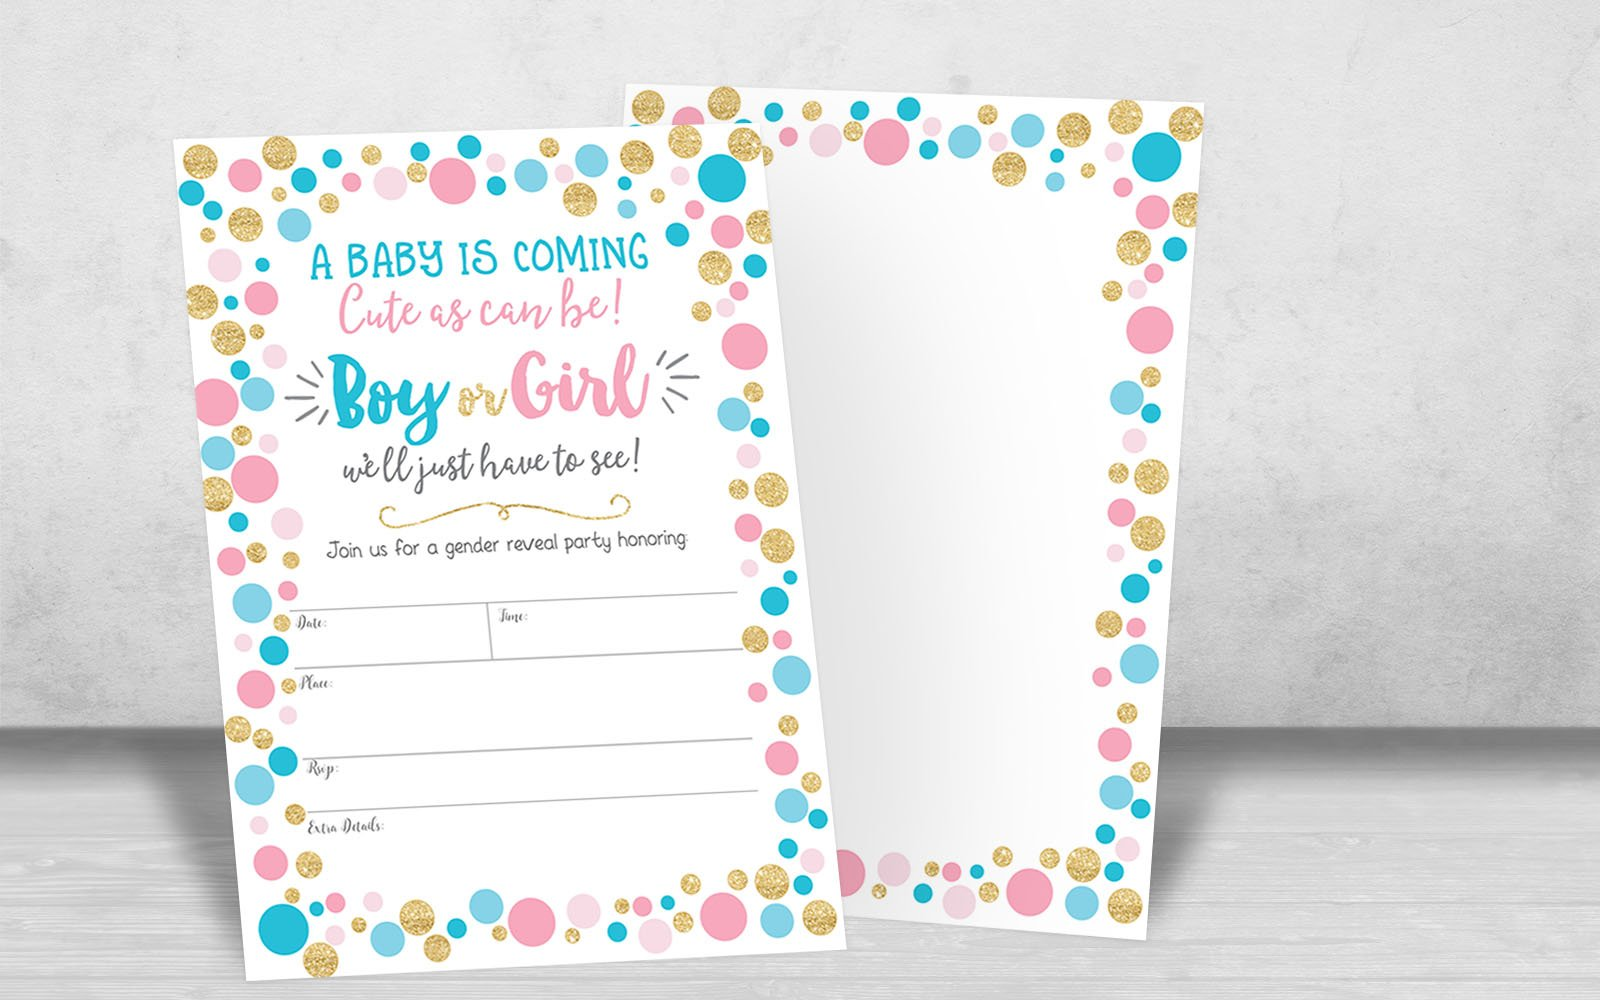 Gender Reveal Invitation, Gender Reveal Party Invite, Neutral Baby Shower Invitation, Boy Or Girl, He Or She, 20 Fill in Invitations and Envelopes by Your Main Event Prints (Image #4)